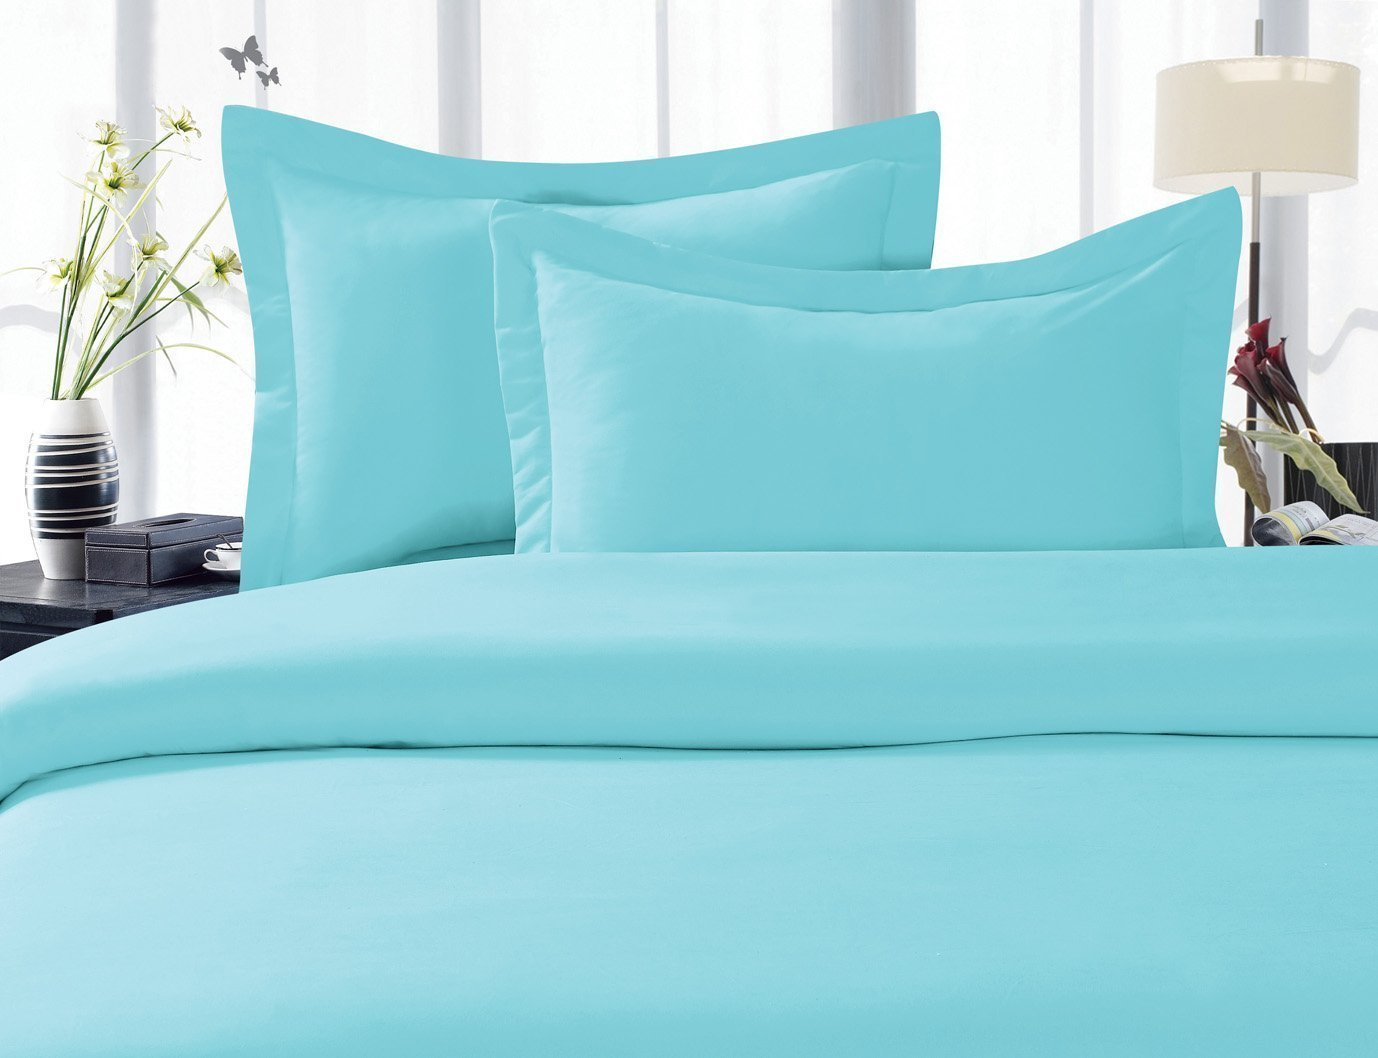 Elegant Comfort 1500 Thread Count Egyptian Quality Super Soft Wrinkle Free 4-Piece Sheet Set, California King, Aqua by Elegant Comfort